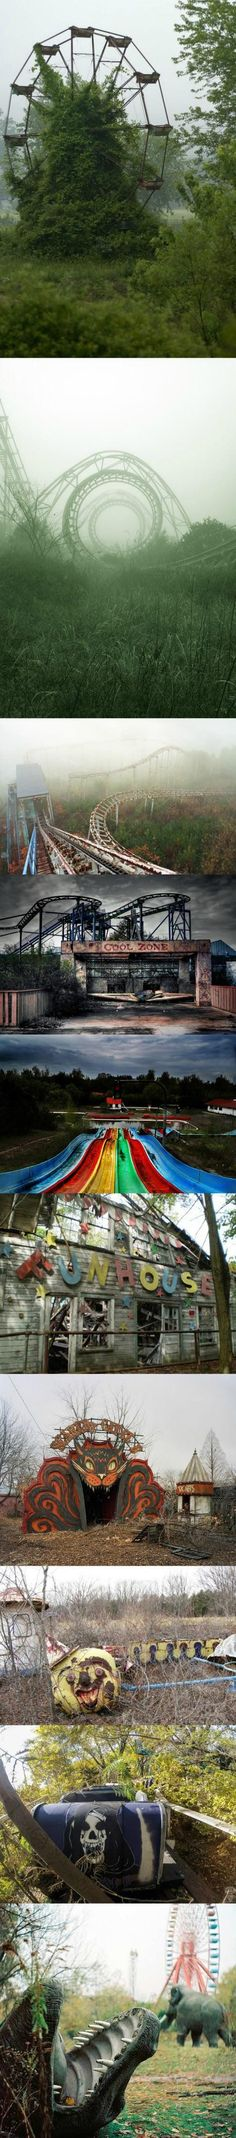 Creepy Looking Abandoned Theme Parks